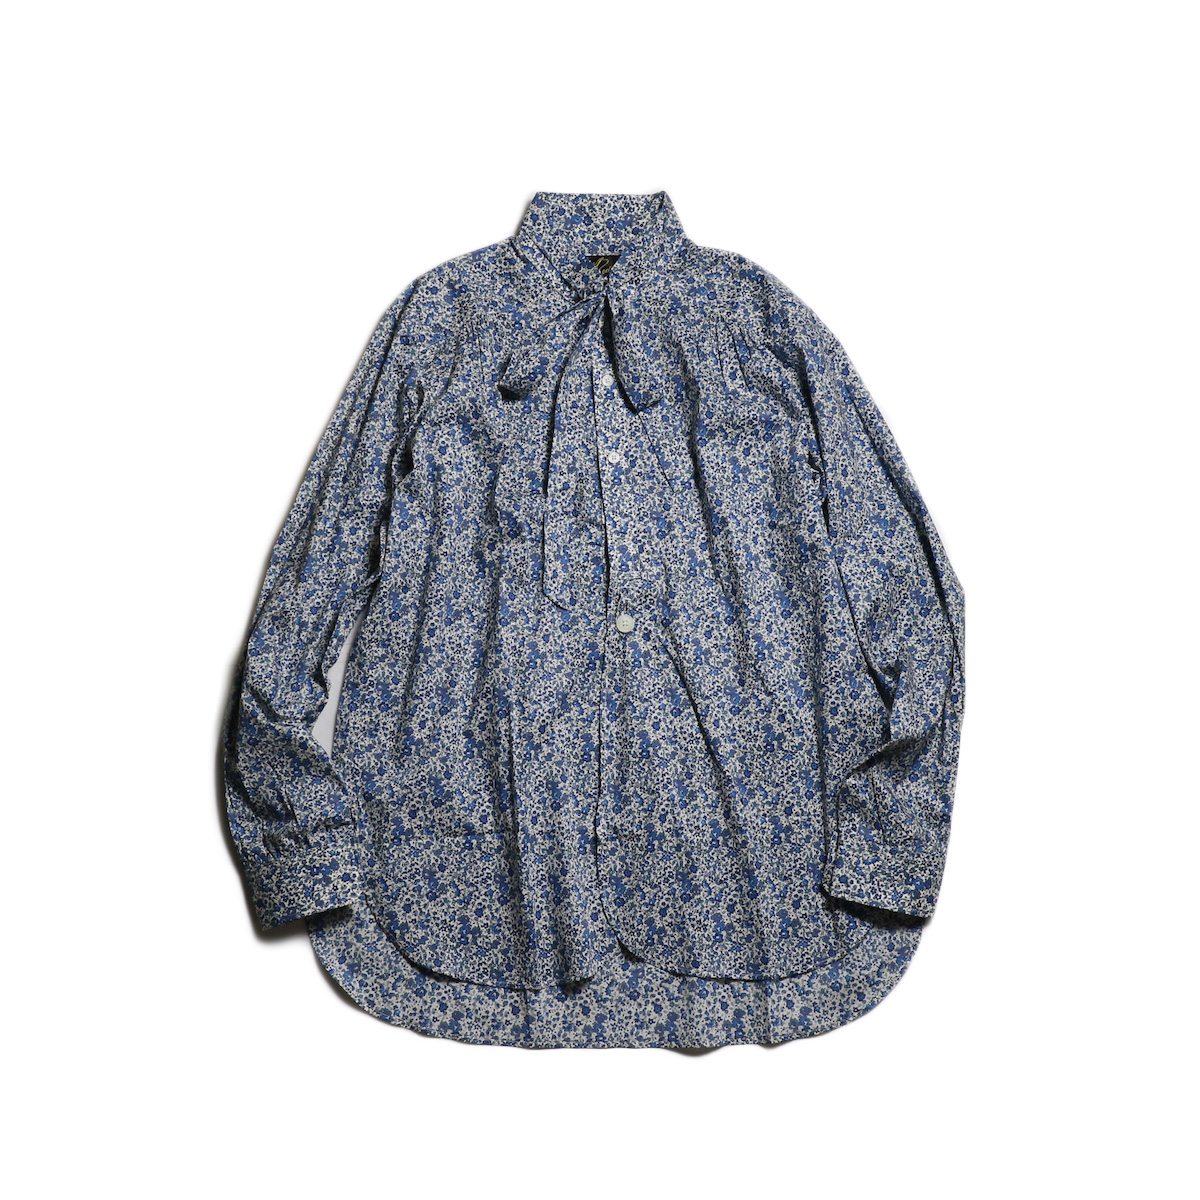 Needles / Ascot Collar EDW Gather Shirt -Liberty Print (Blue Flower)